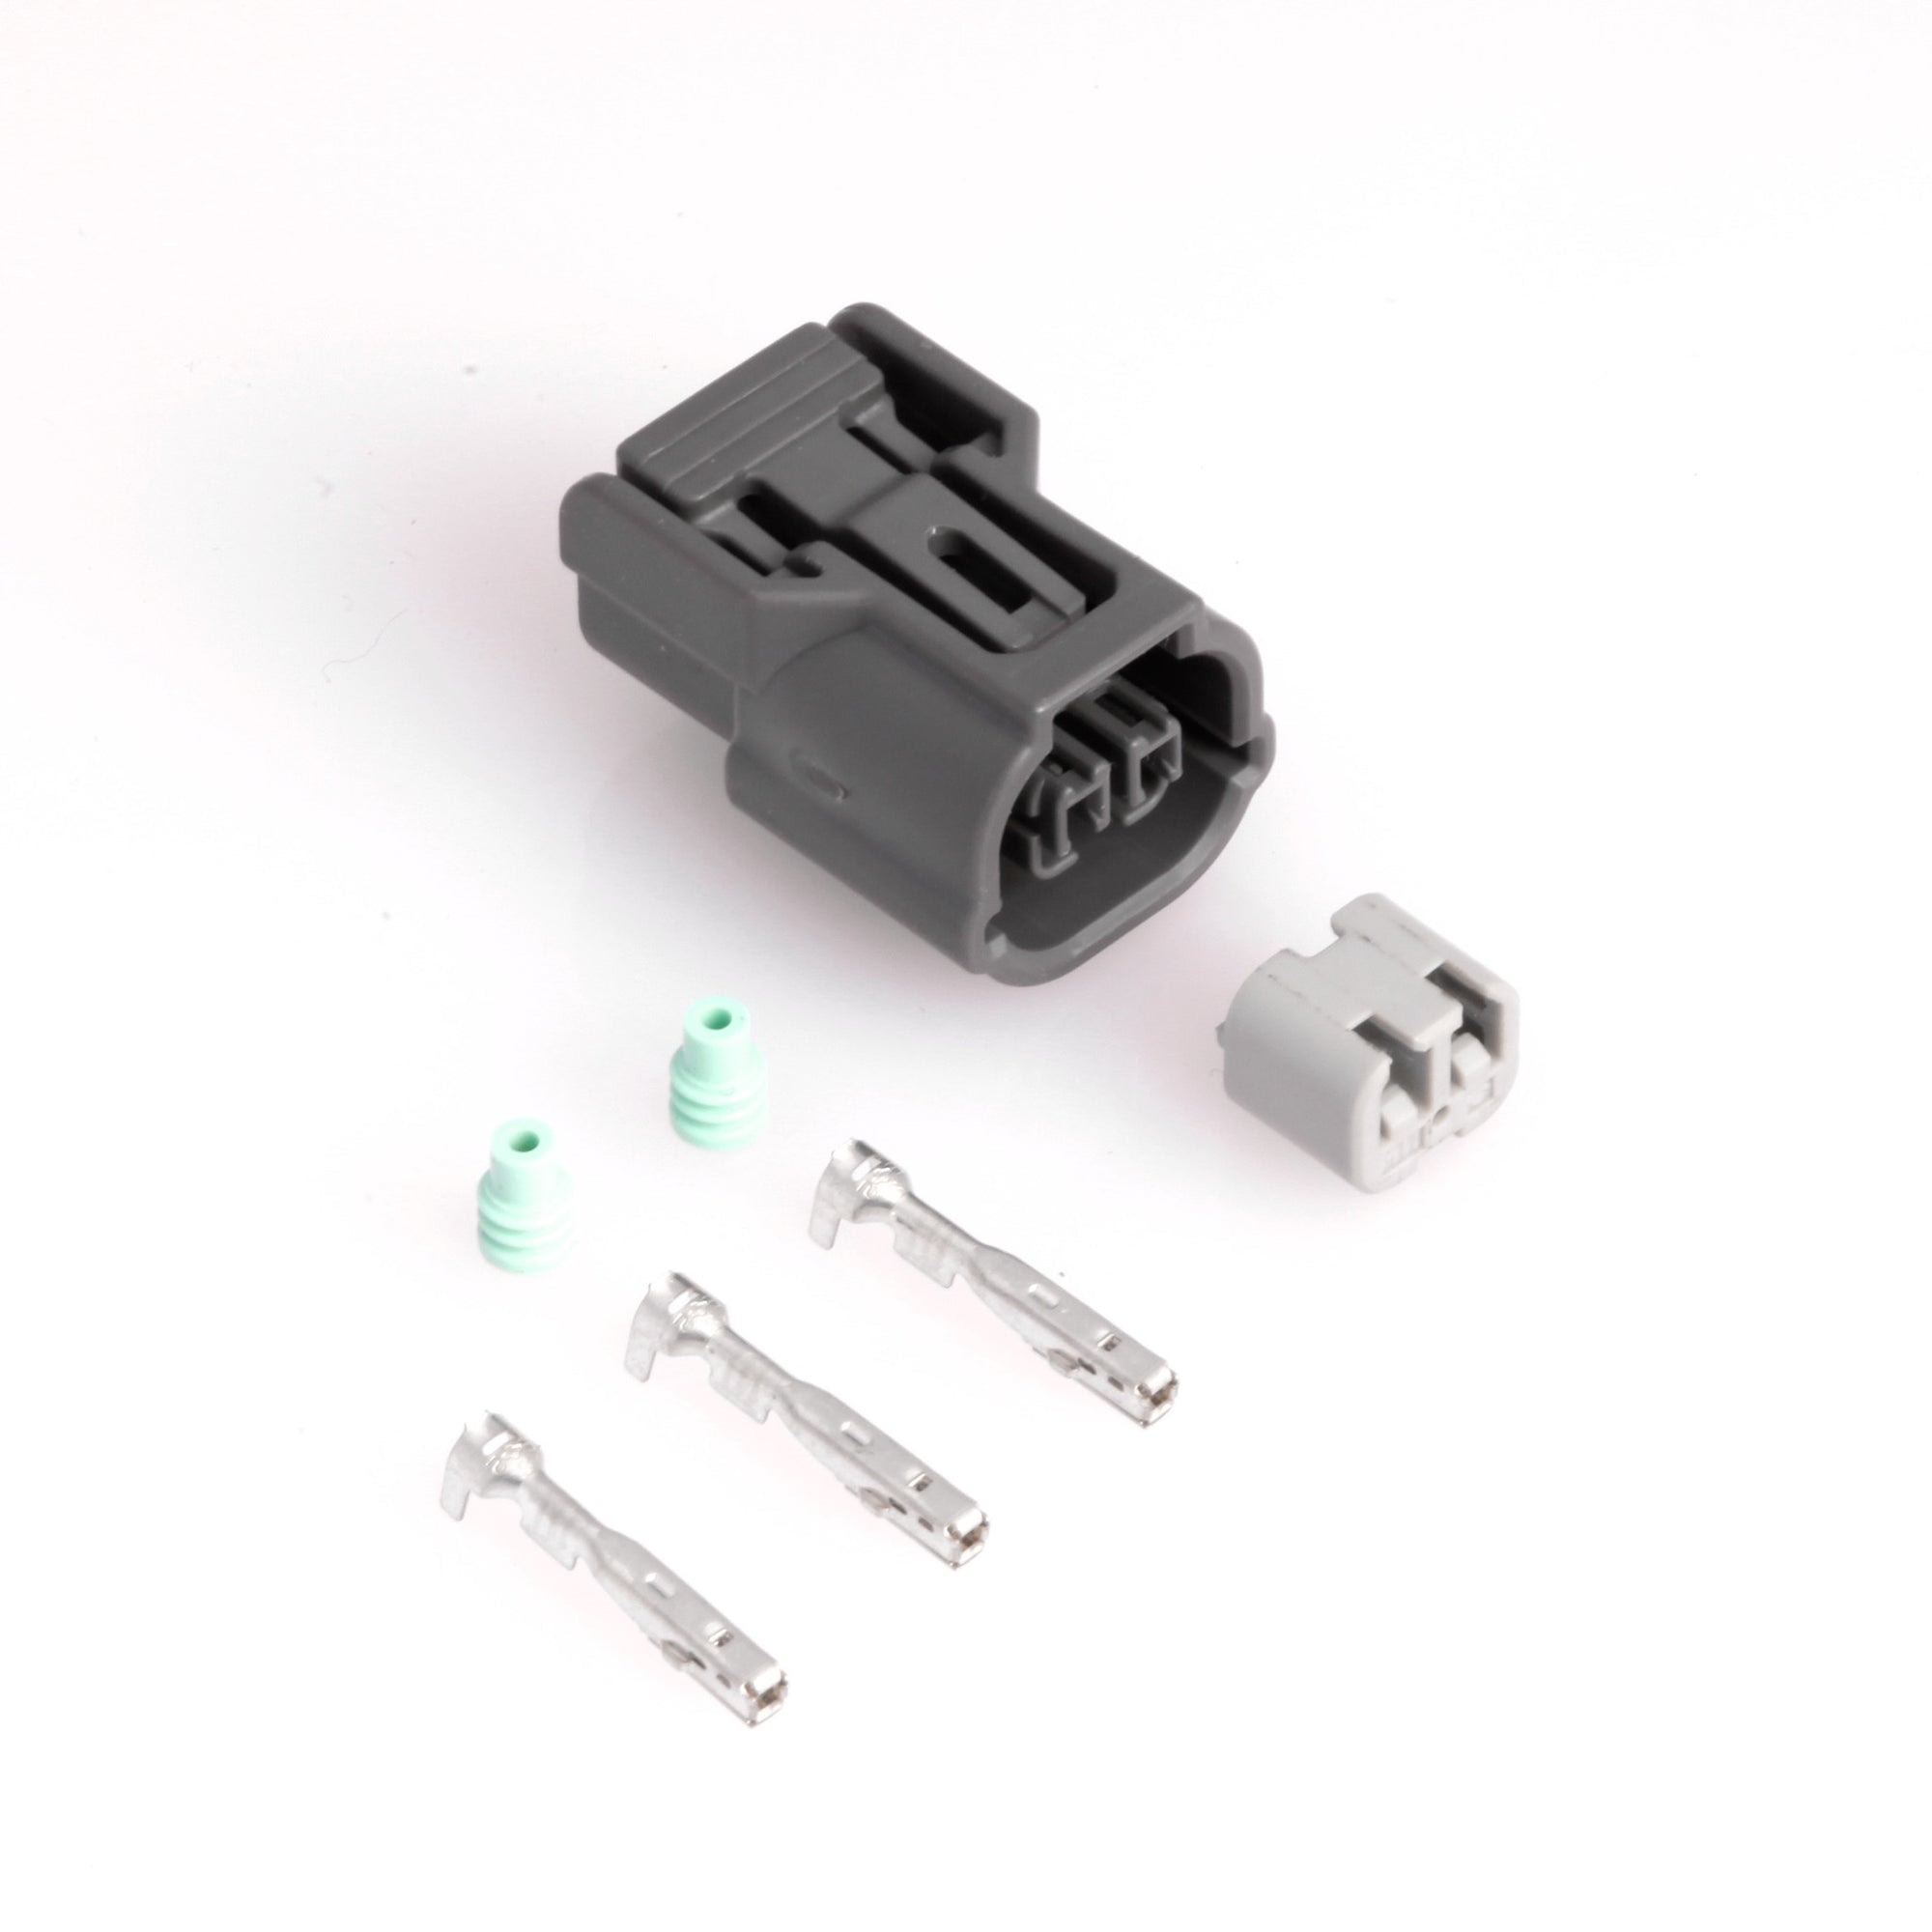 Connectors - Honda 2-Position Connector Kit, Gray